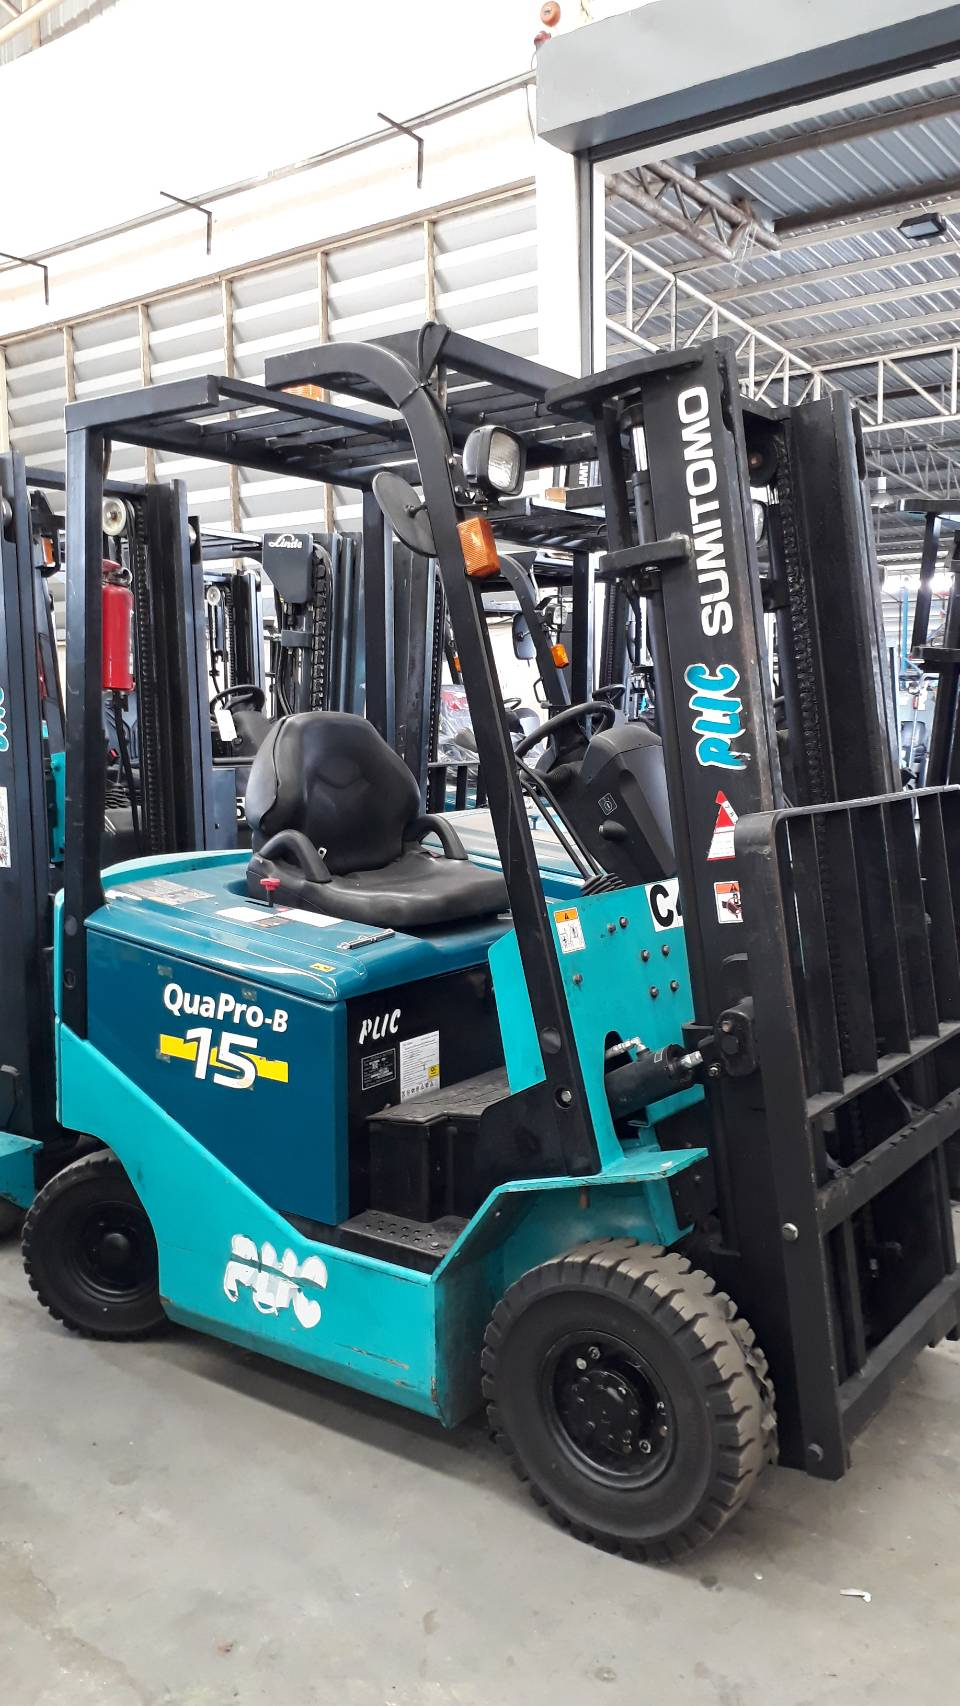 SUMITOMO FORKLIFT COUNTER 8FB15PXII-V300, BATTERY, 1.5 Ton